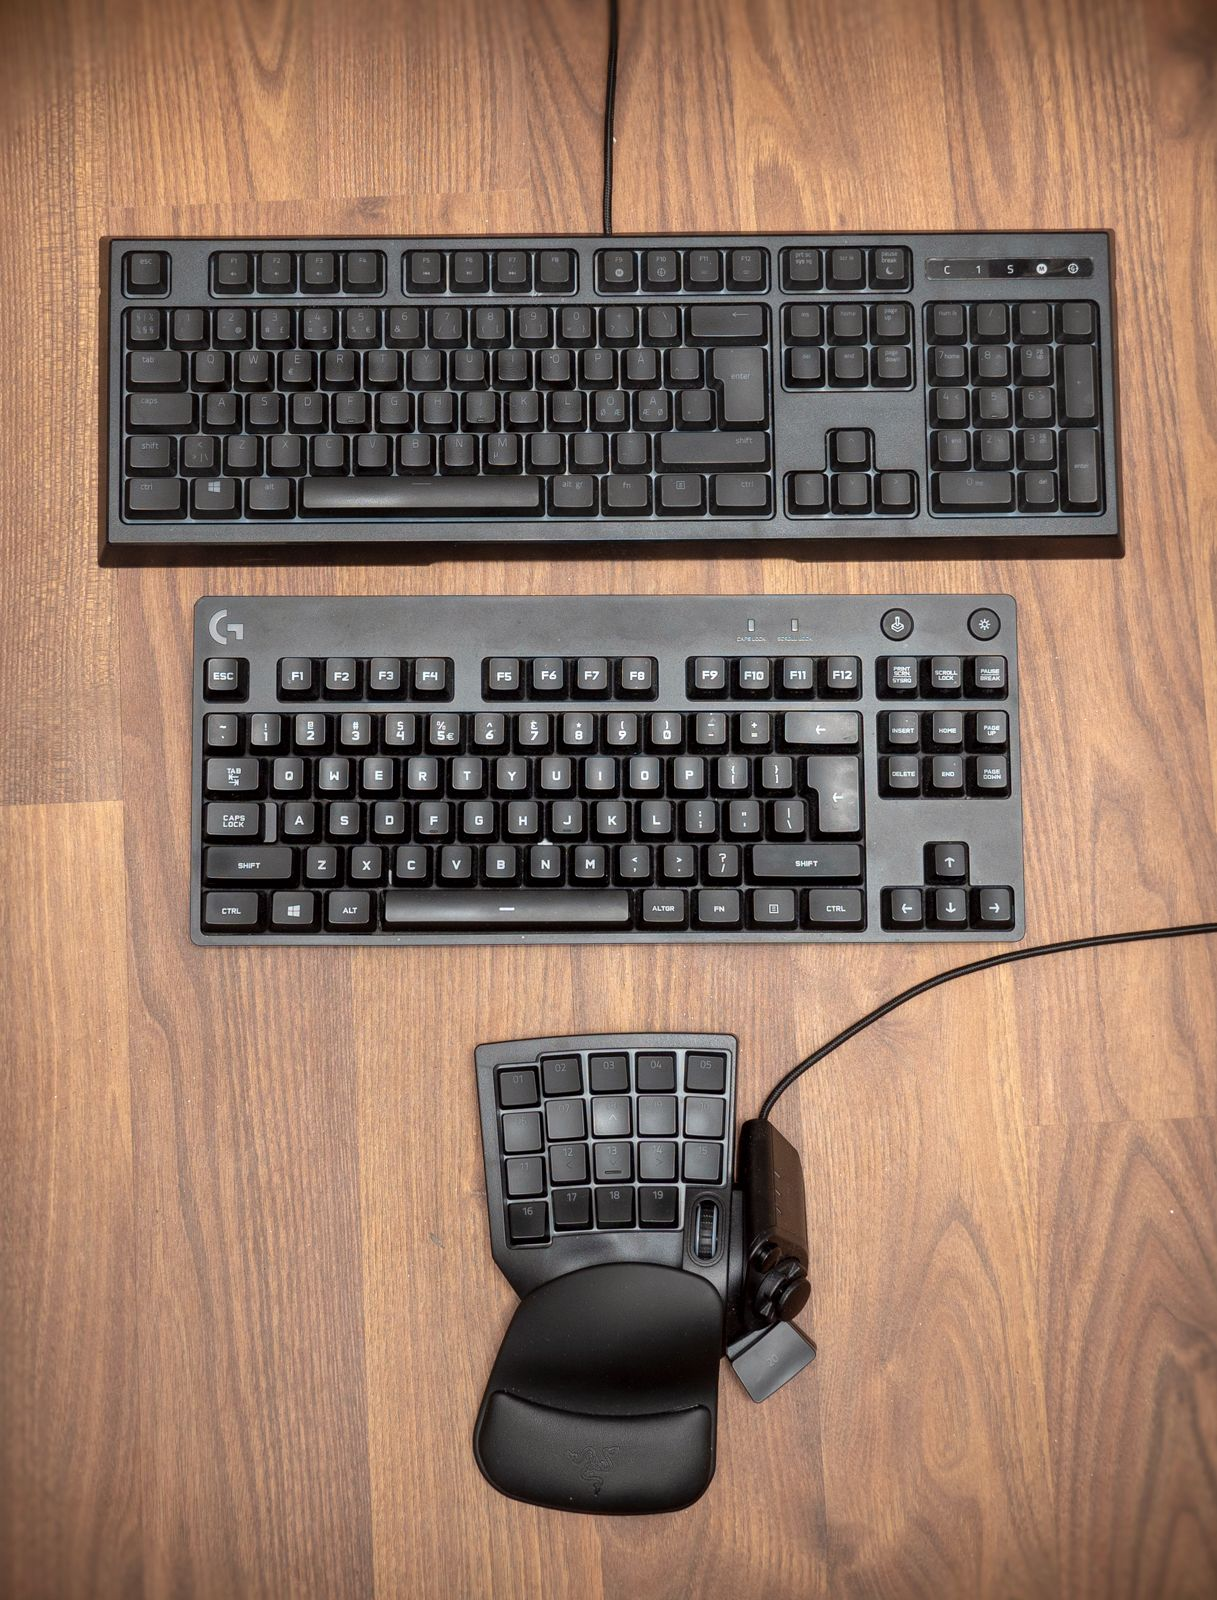 Det beste tastaturet for gaming Samletest Tek.no